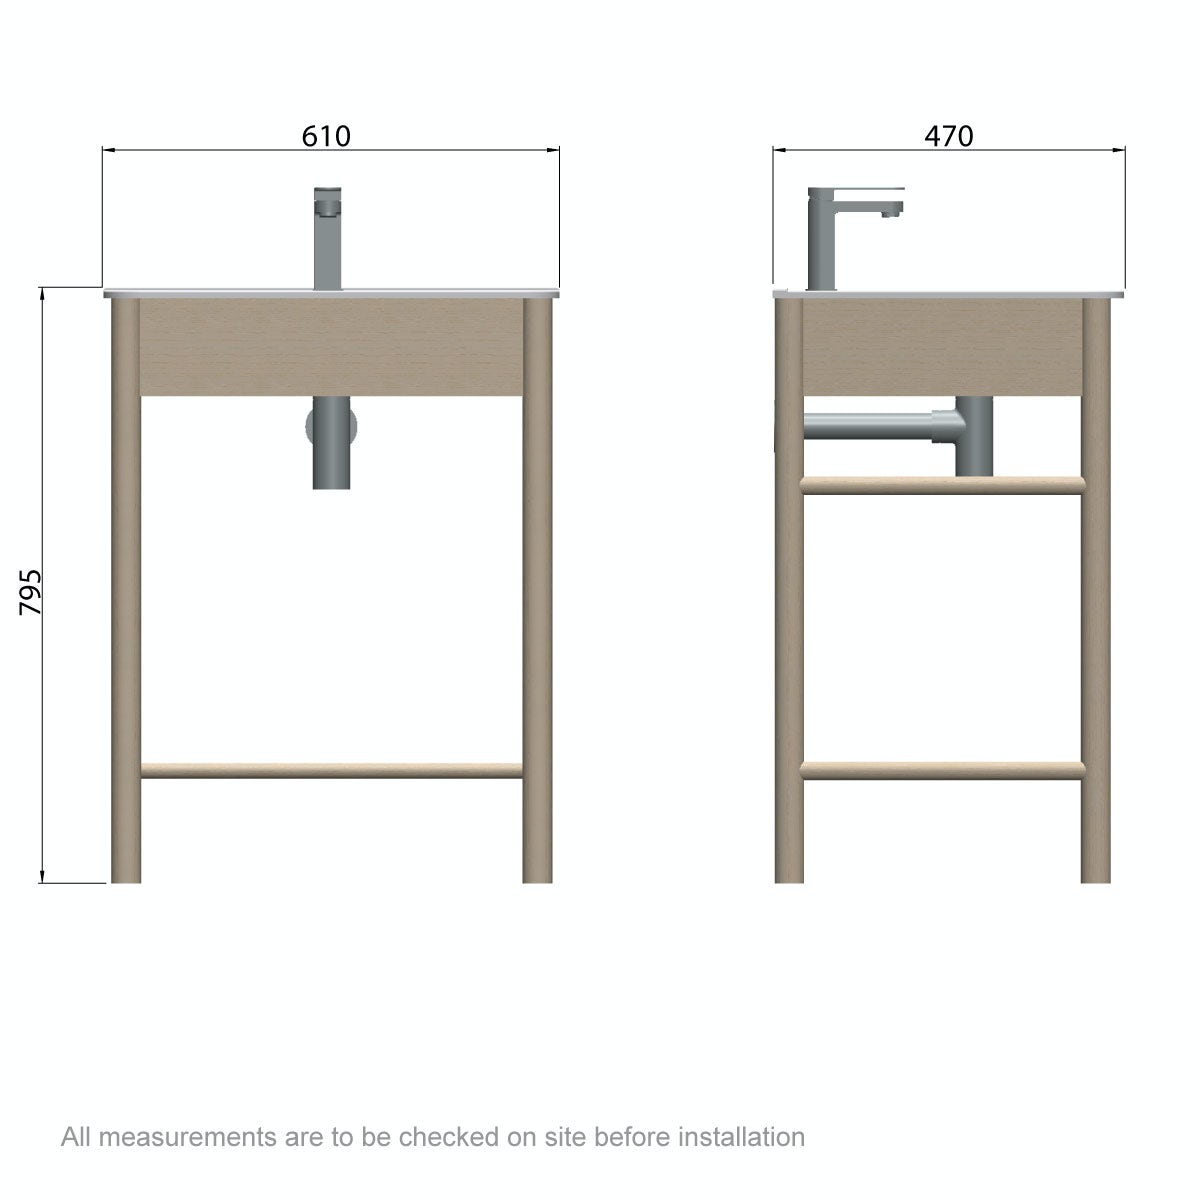 Dimensions for Mode South Bank white washstand with basin 600mm